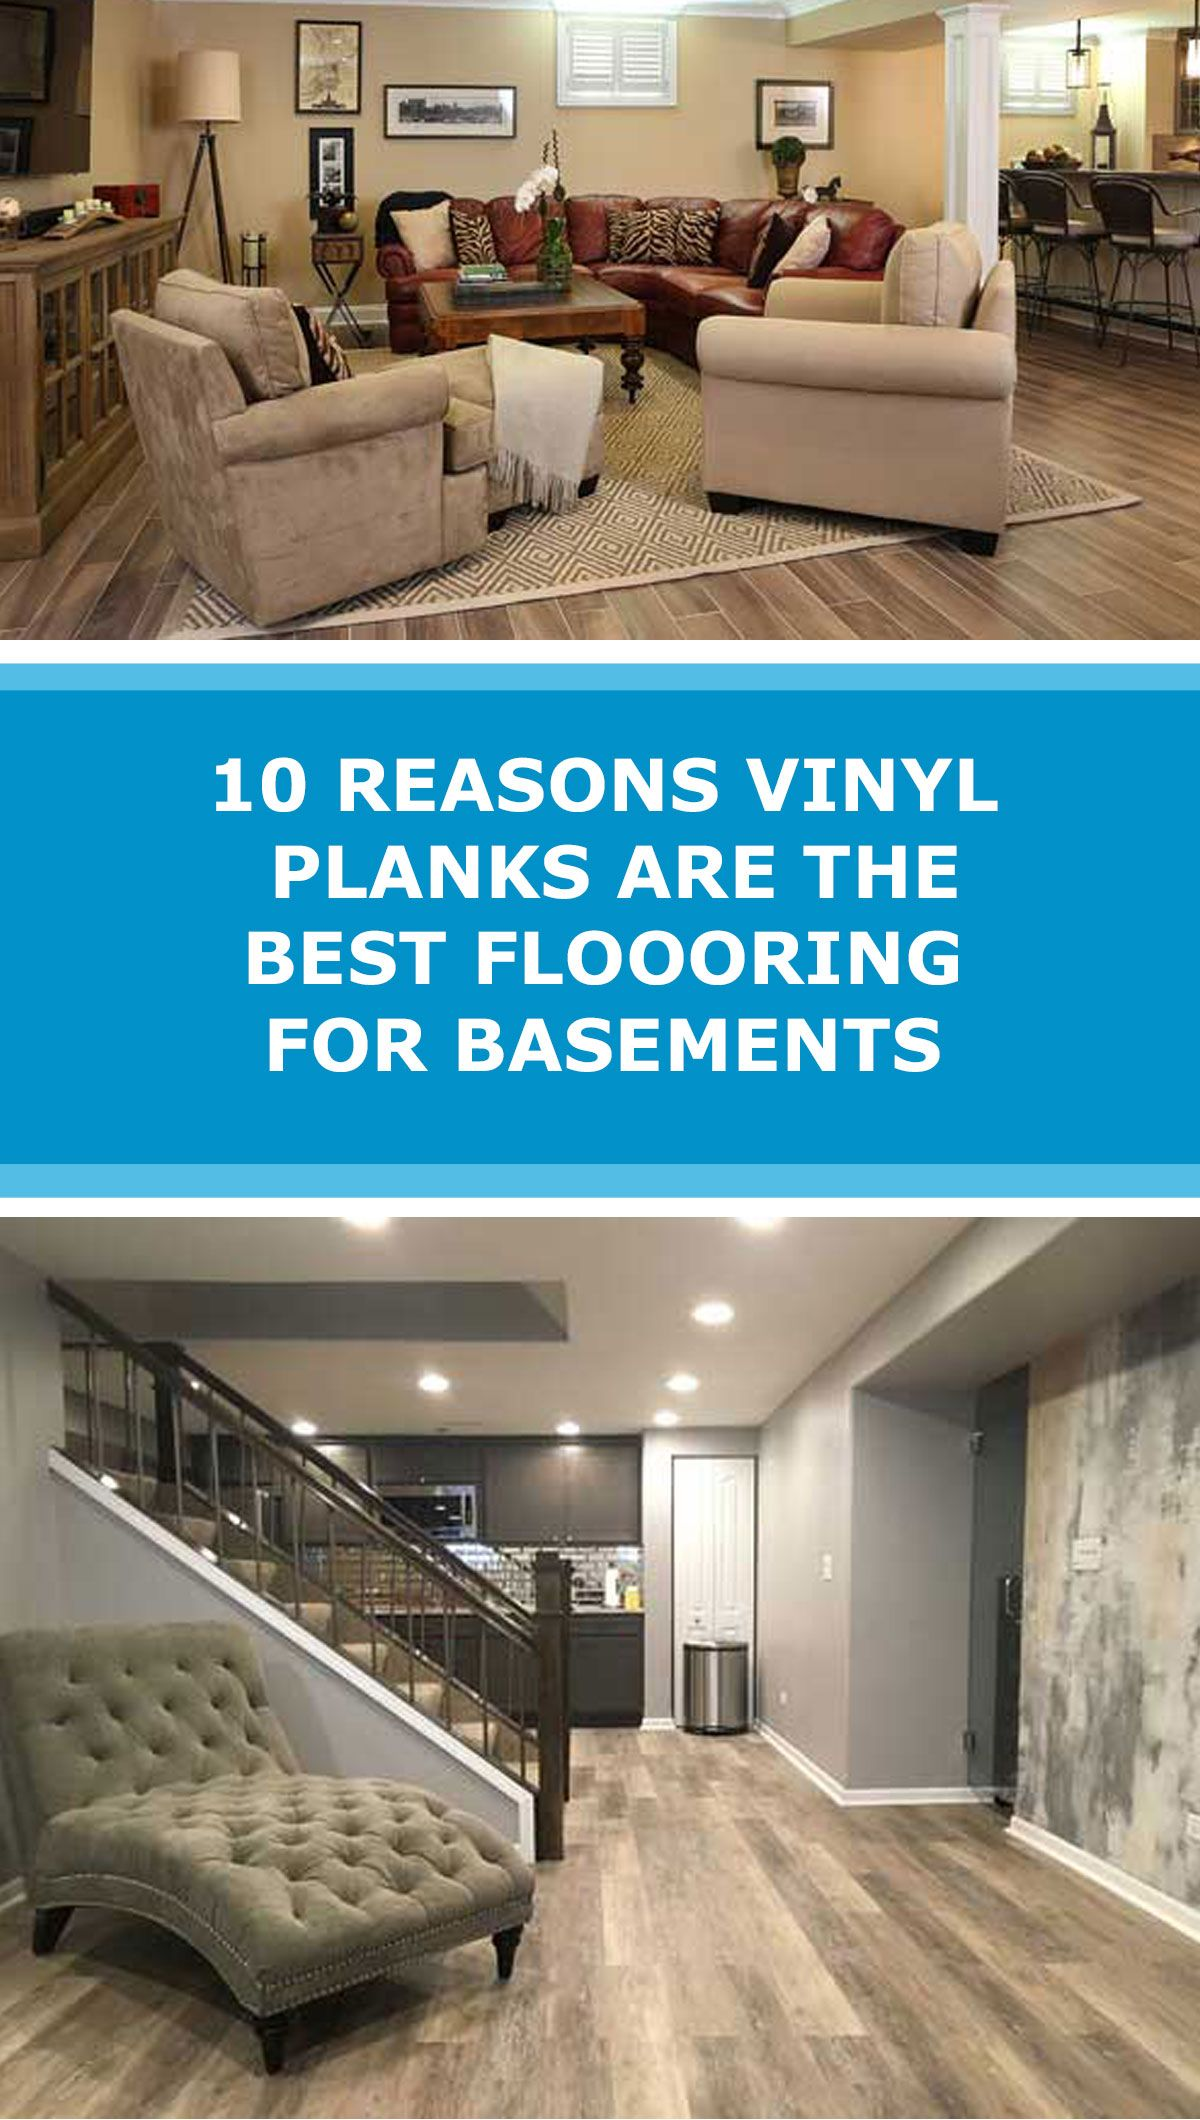 Why Vinyl Planks Are The Best Flooring For Basements